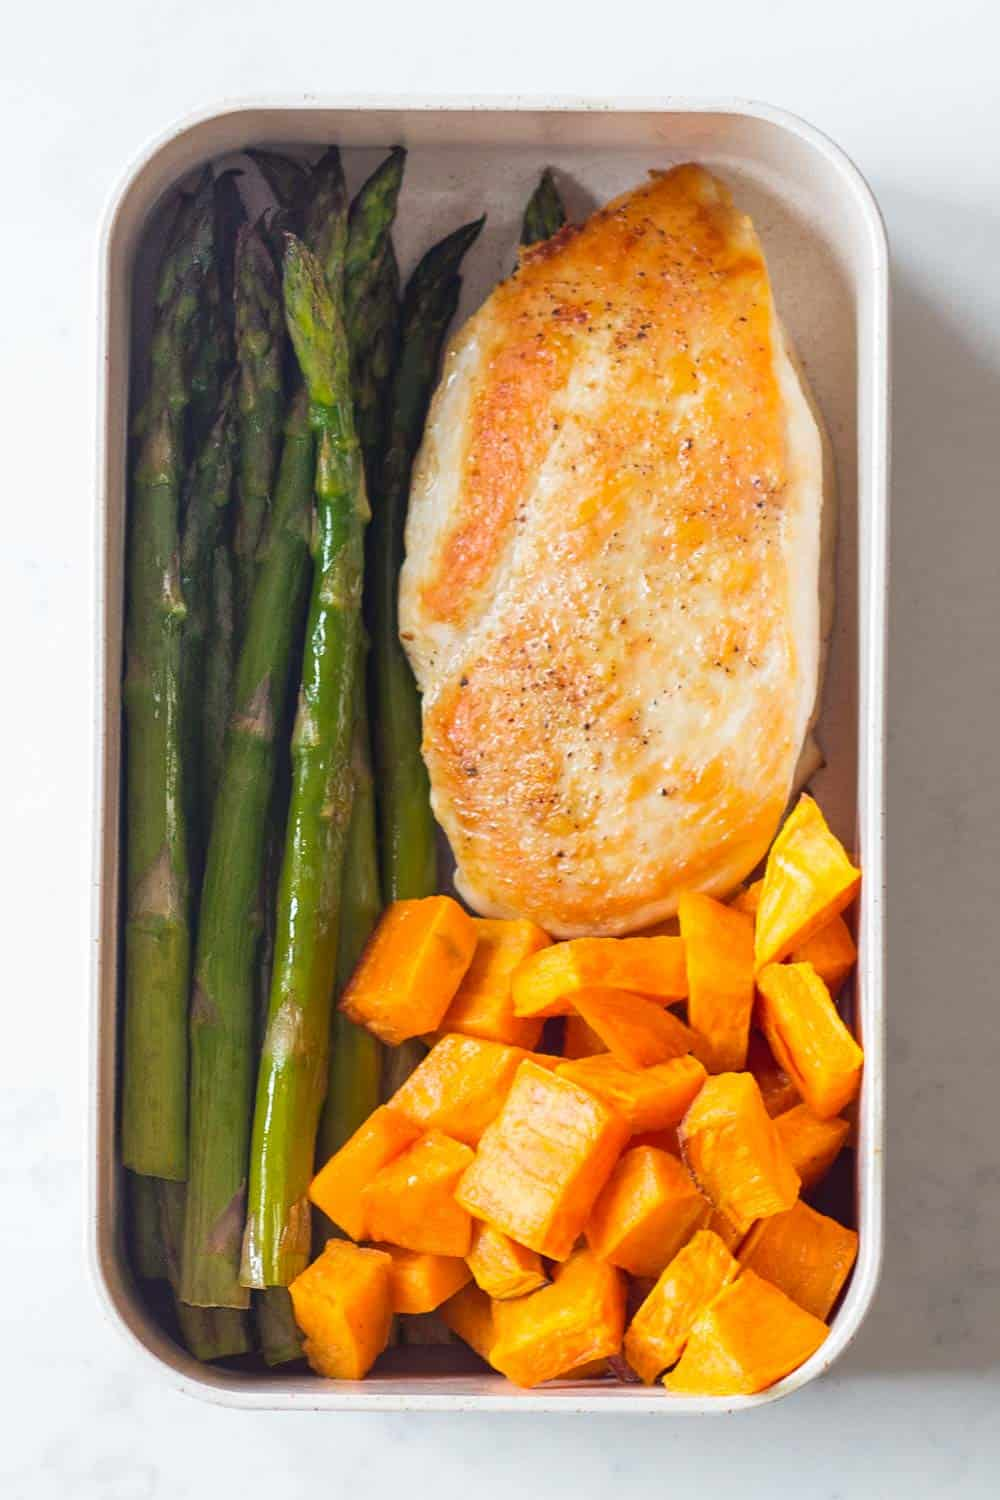 A healthy Paleo Lunch for your Paleo Meal Plan - pan fried chicken breast with roasted sweet potato and asparagus.